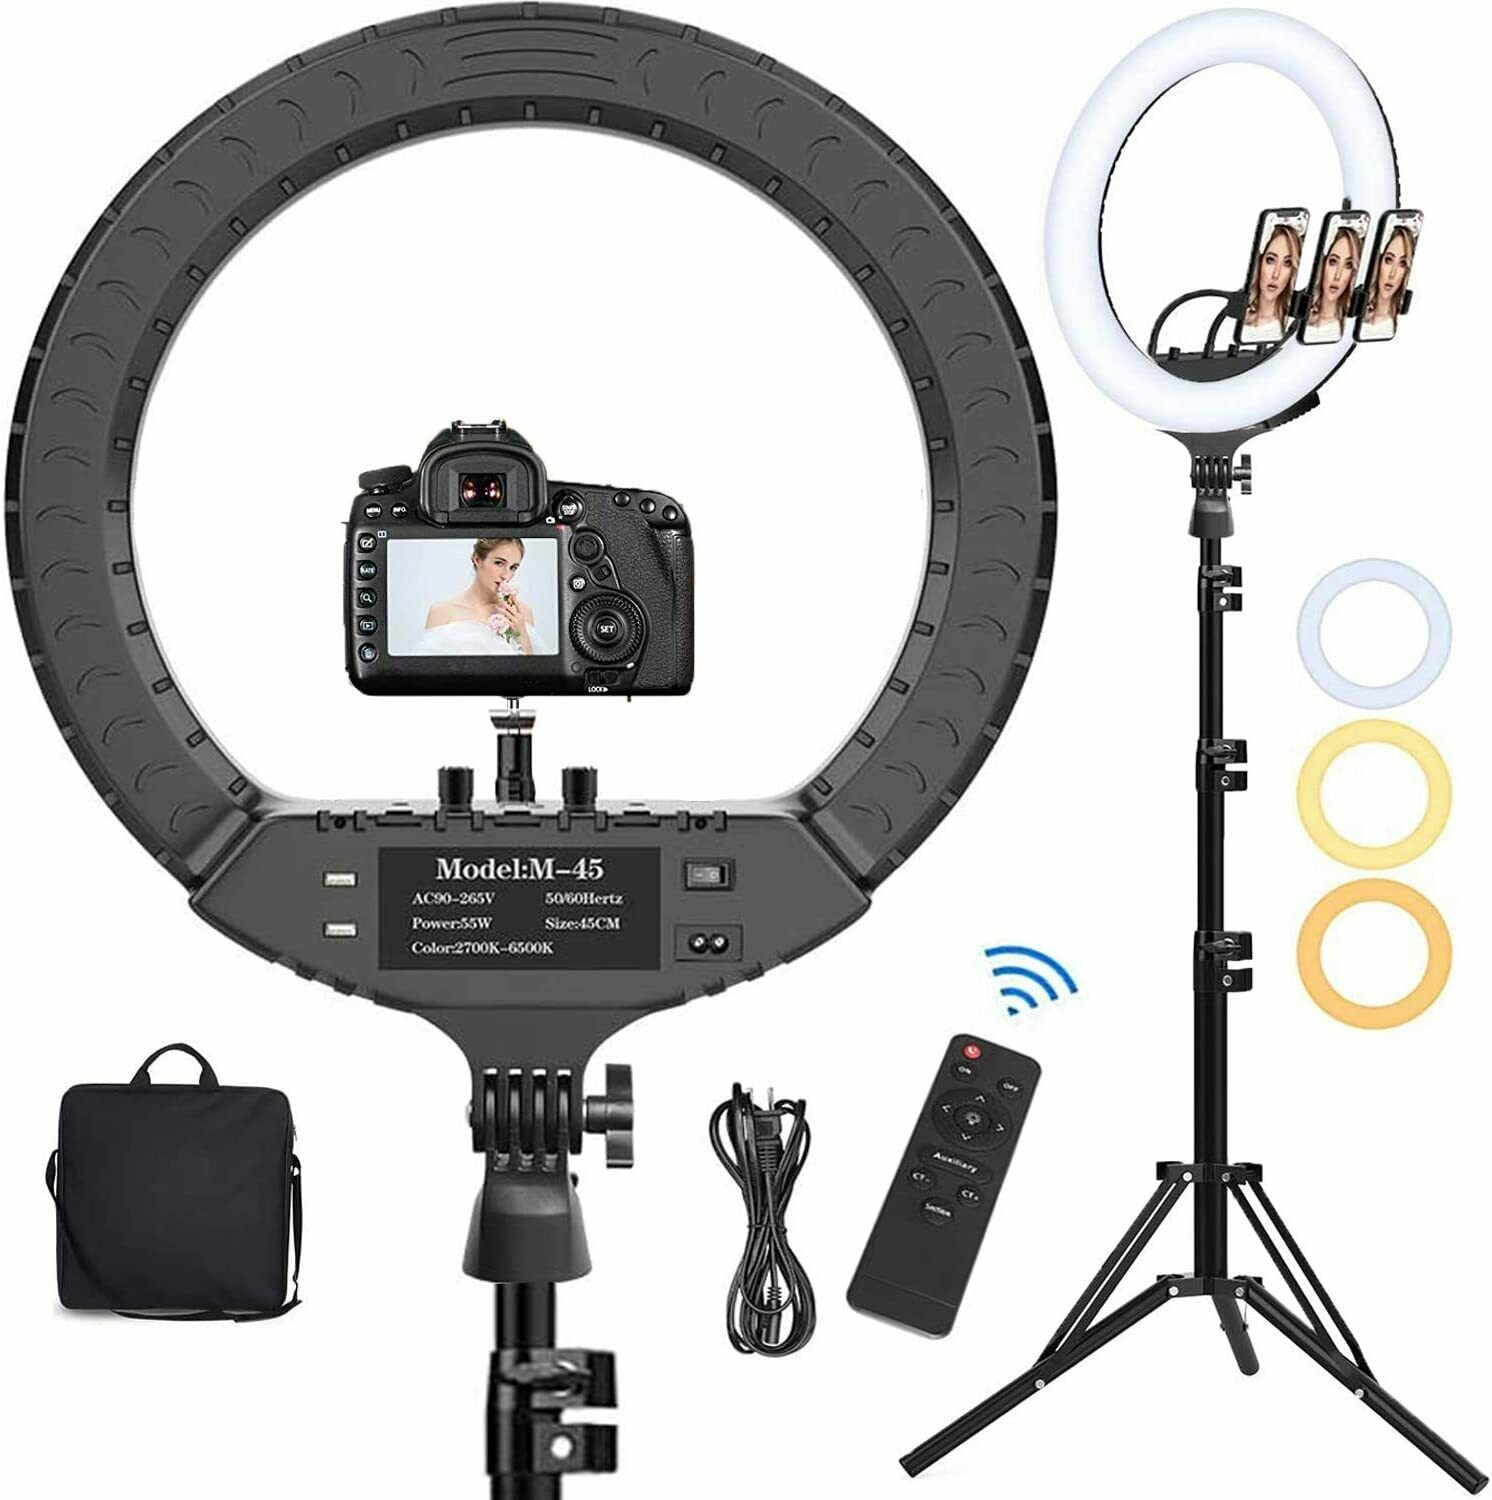 18 Inch LED Ring Light with Tripod Stand & Phone Holder, Hatynud 2700K-6500K Dimmable LED Ringlight for Photography/Camera/Makeup/YouTube Video/Live Stream, Compatible for iPhone and Android